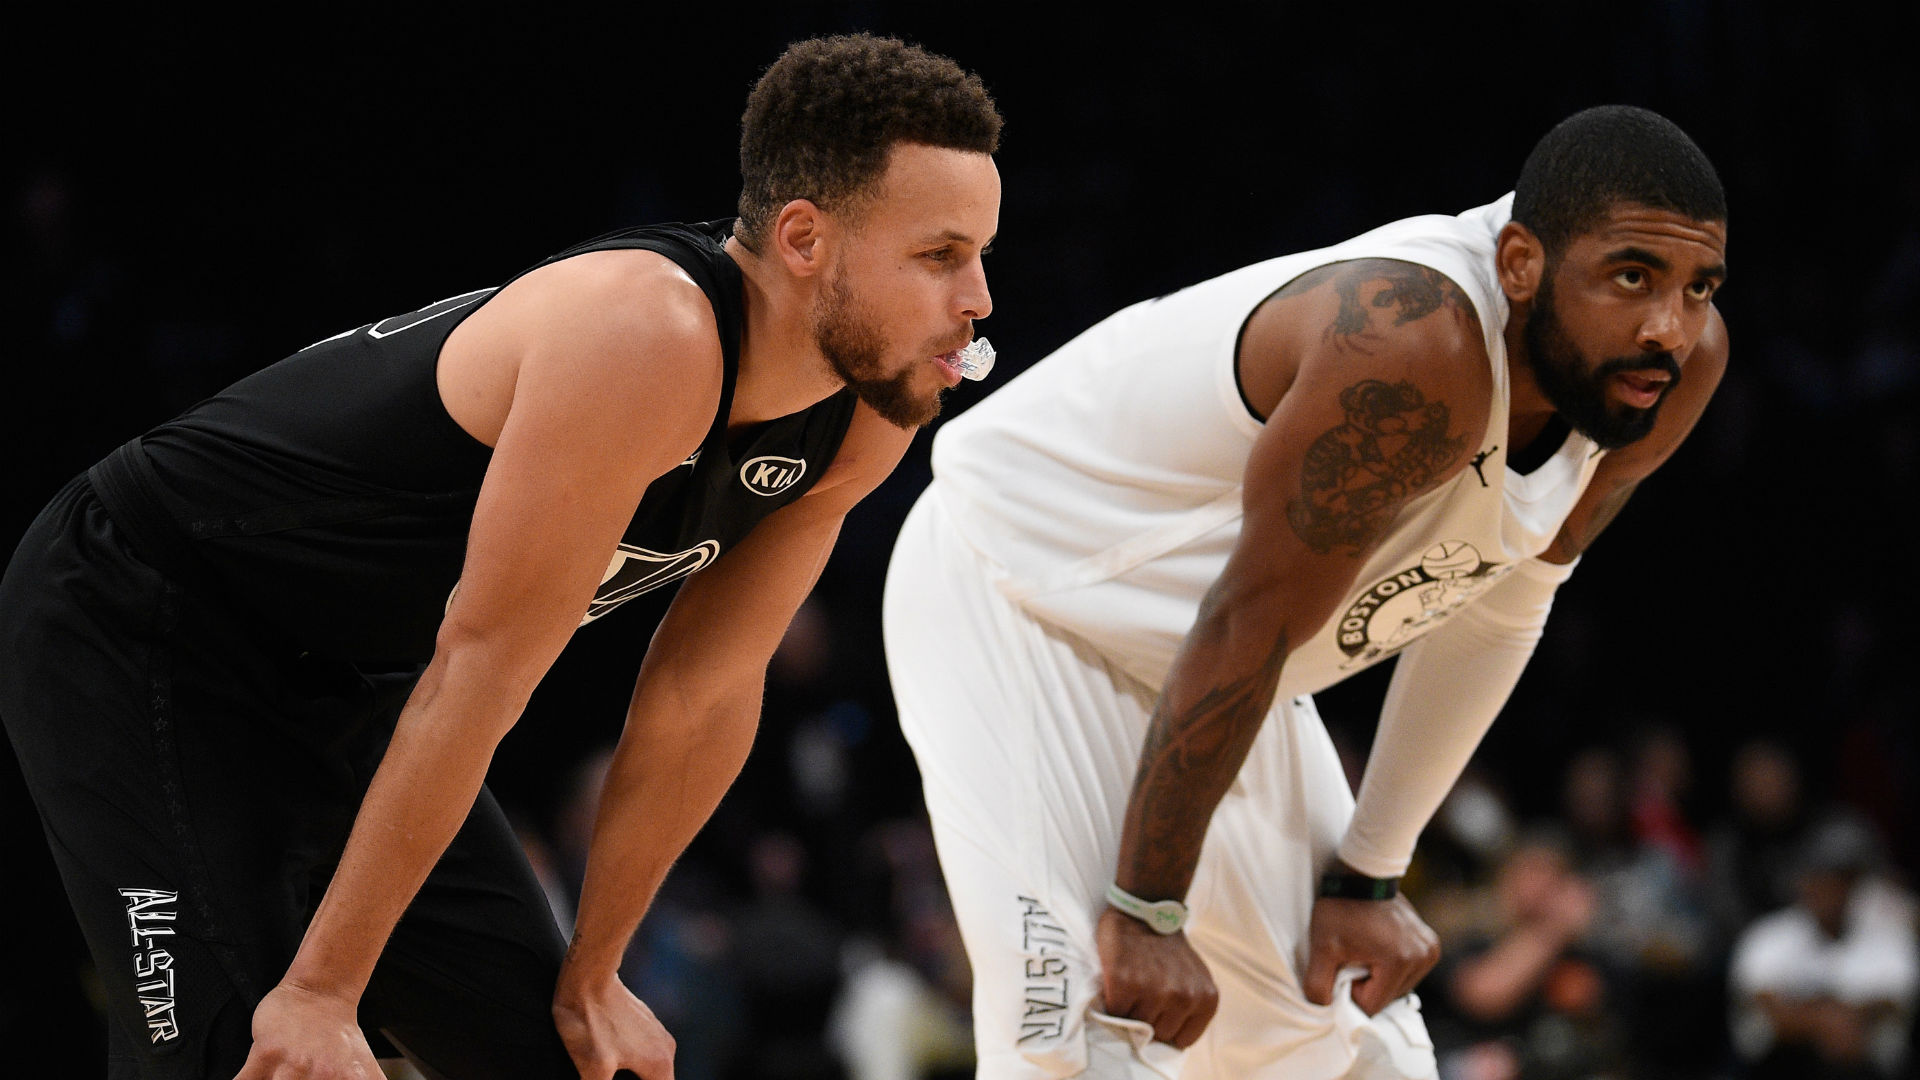 Kyrie Irving defends Stephen Curry's moon landing comments